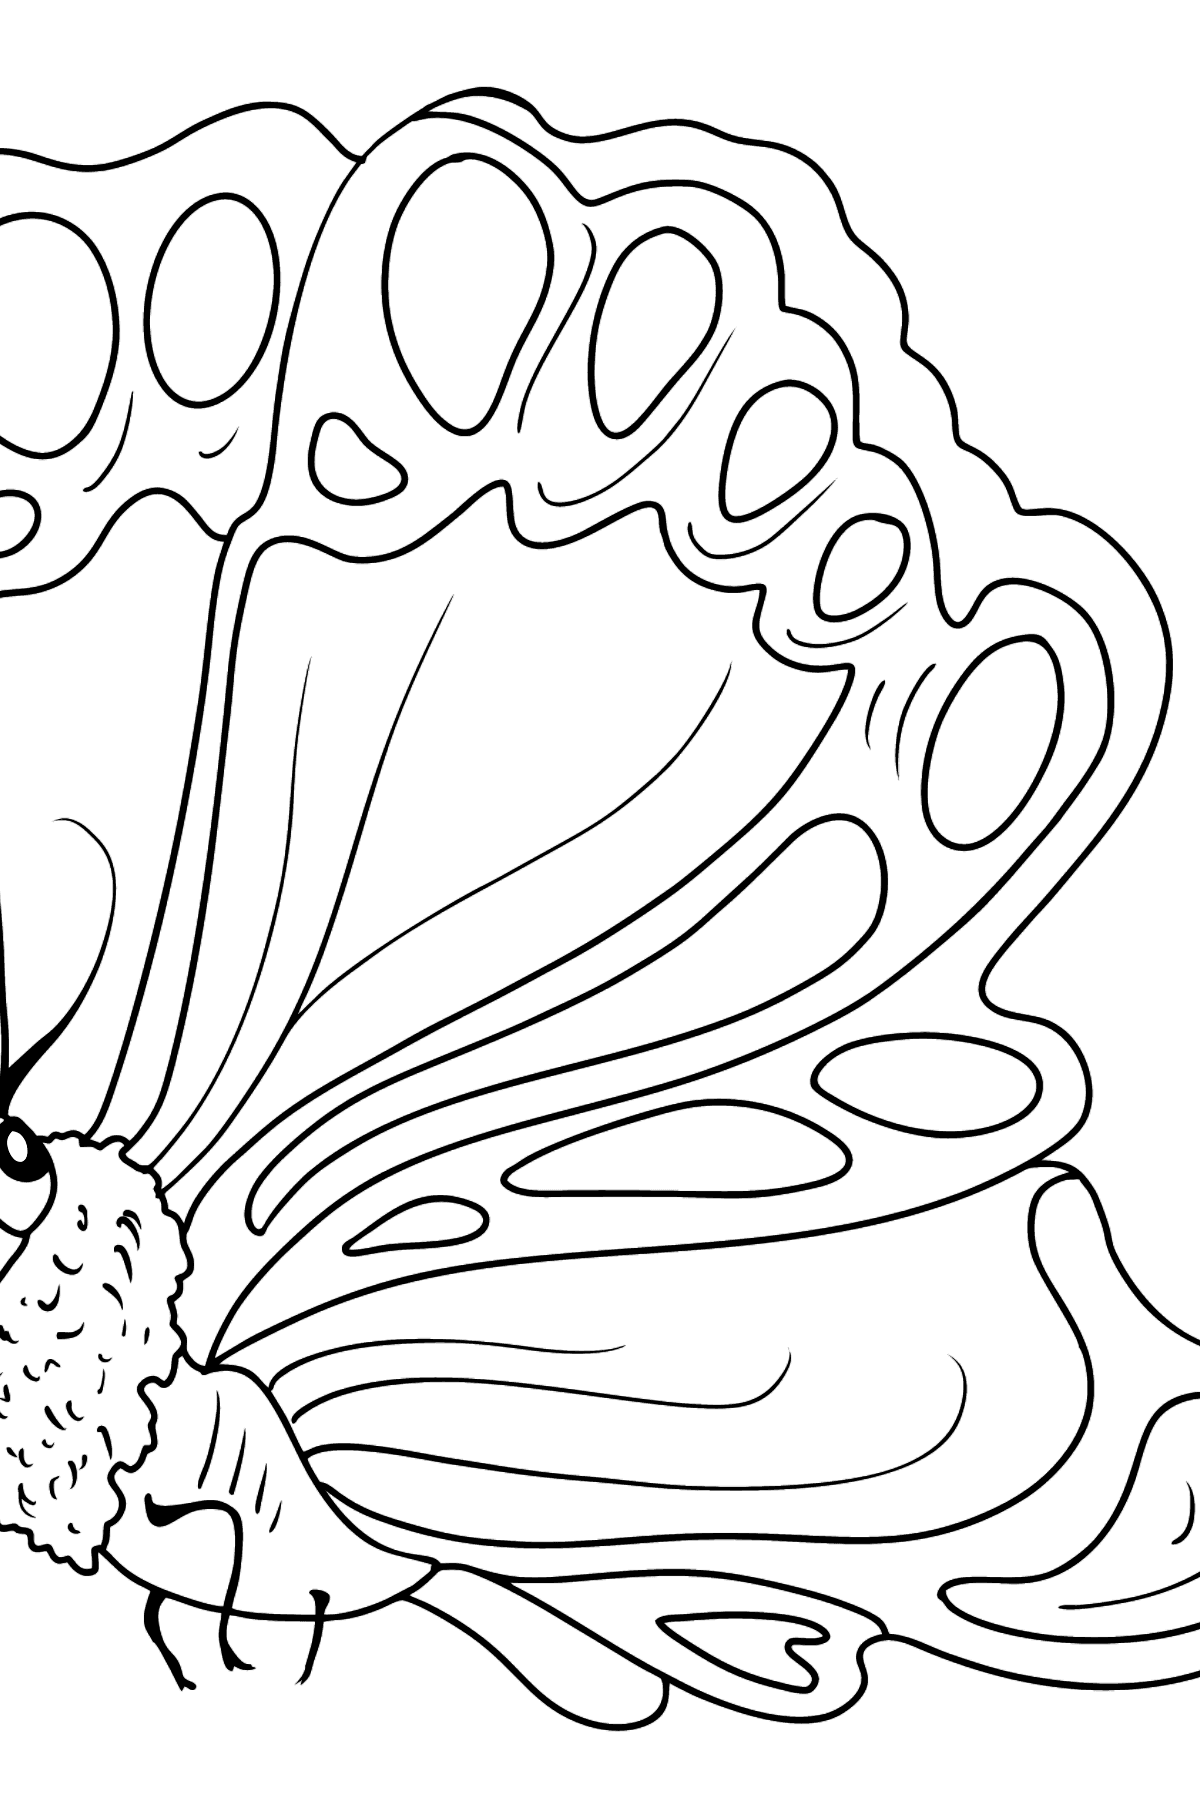 Butterfly Sideways coloring page - Coloring Pages for Kids